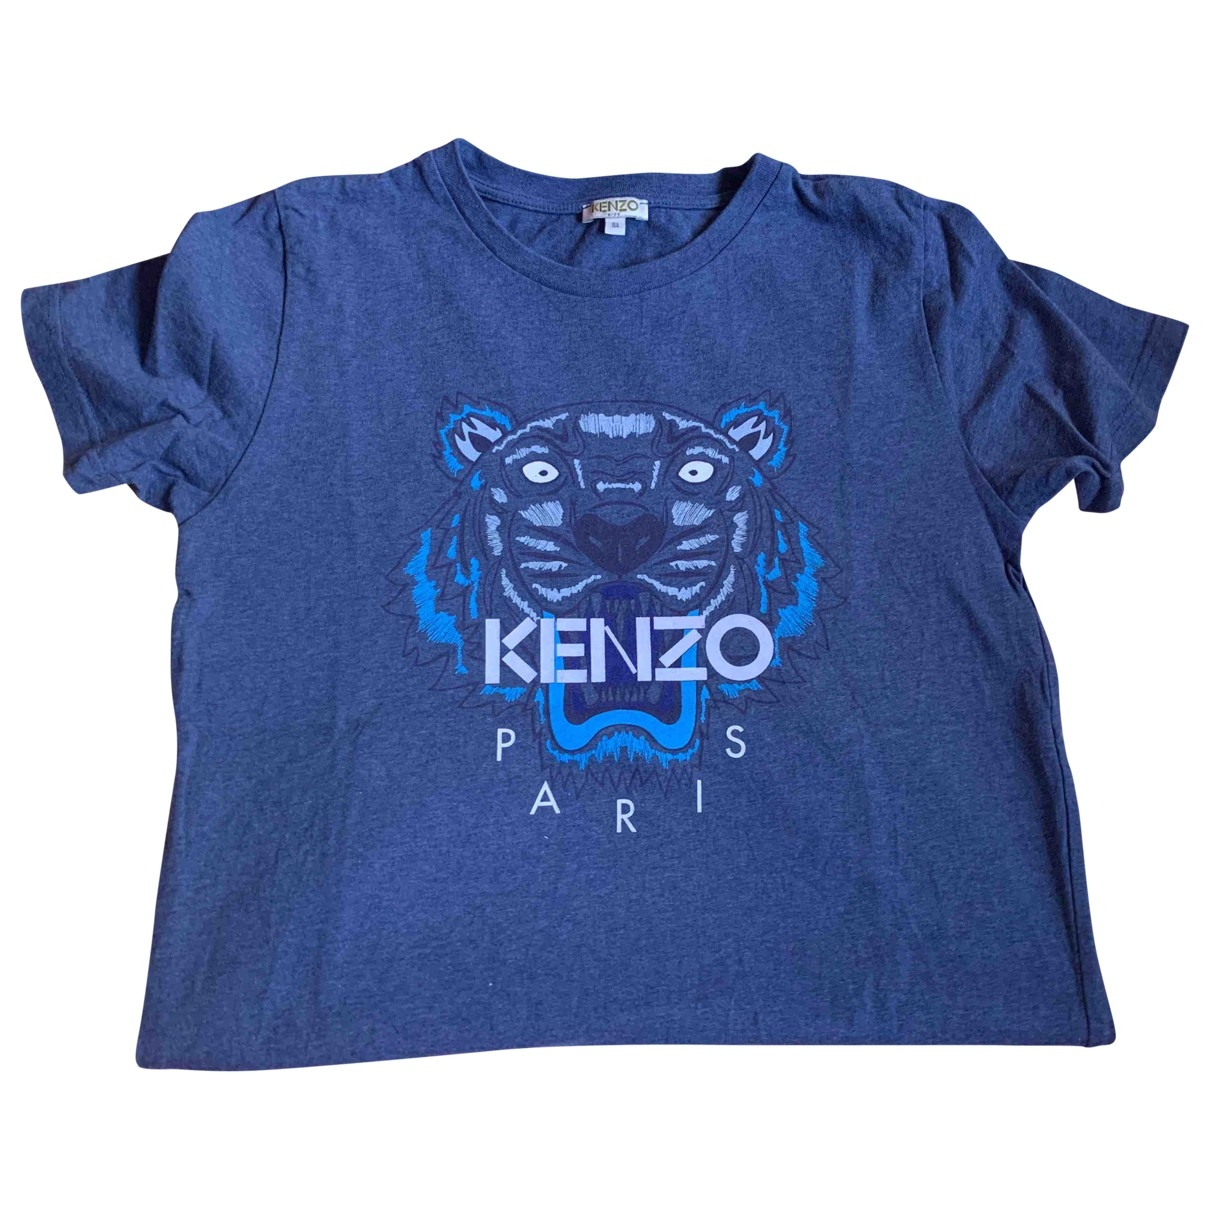 Kenzo \N Blue Cotton  top for Kids 16 years - M UK